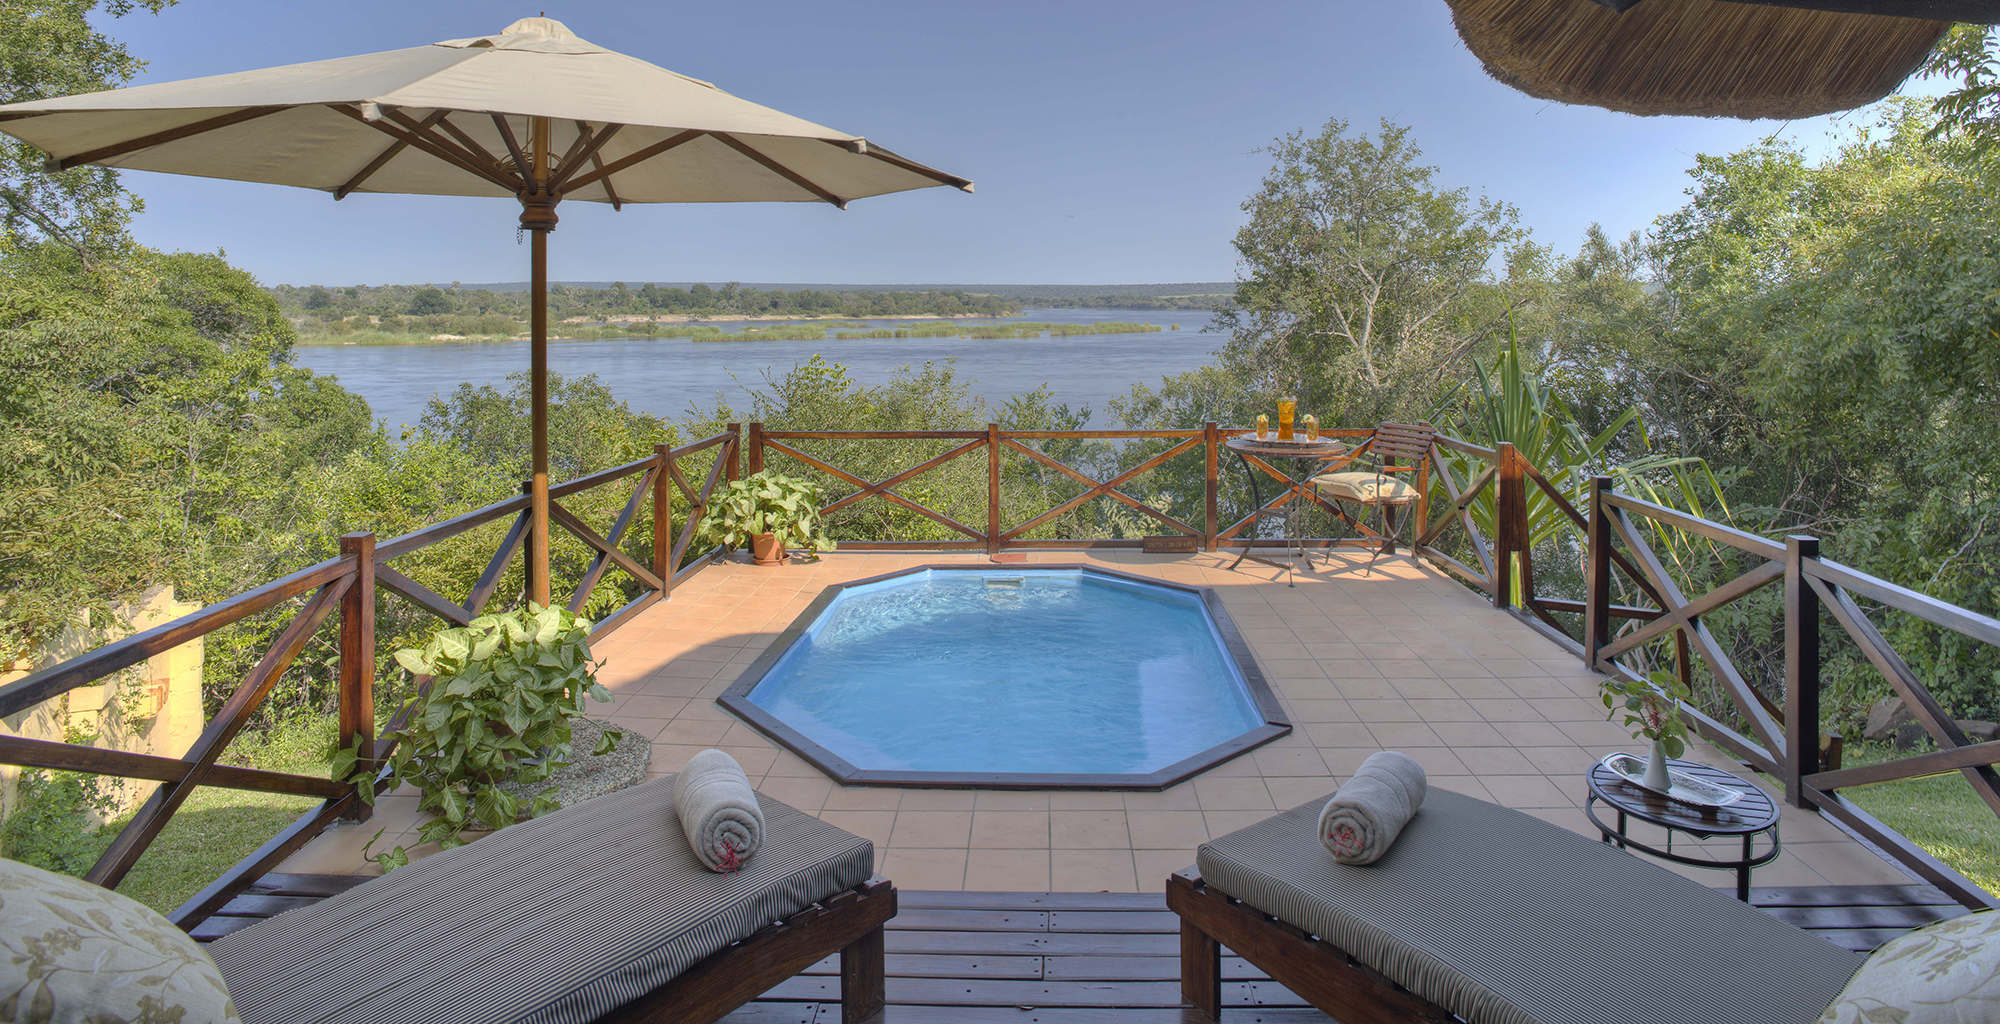 Zambia-River-Club-Deck-Pool